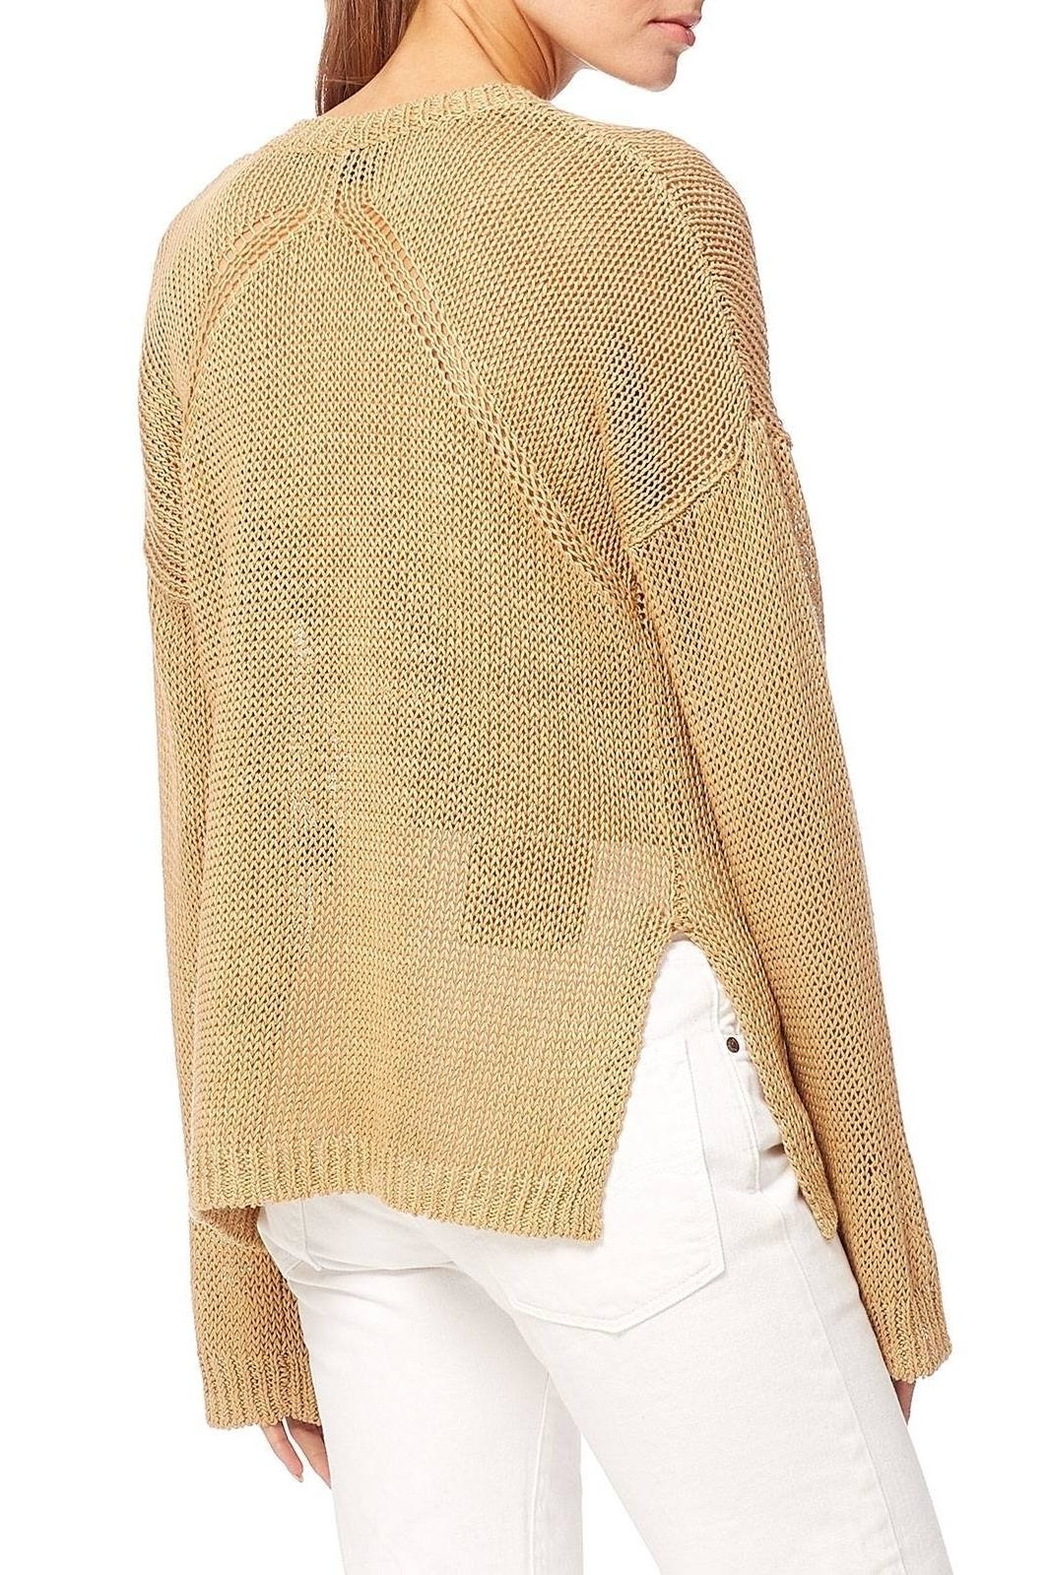 360 Cashmere Noelle Sweater - Front Full Image